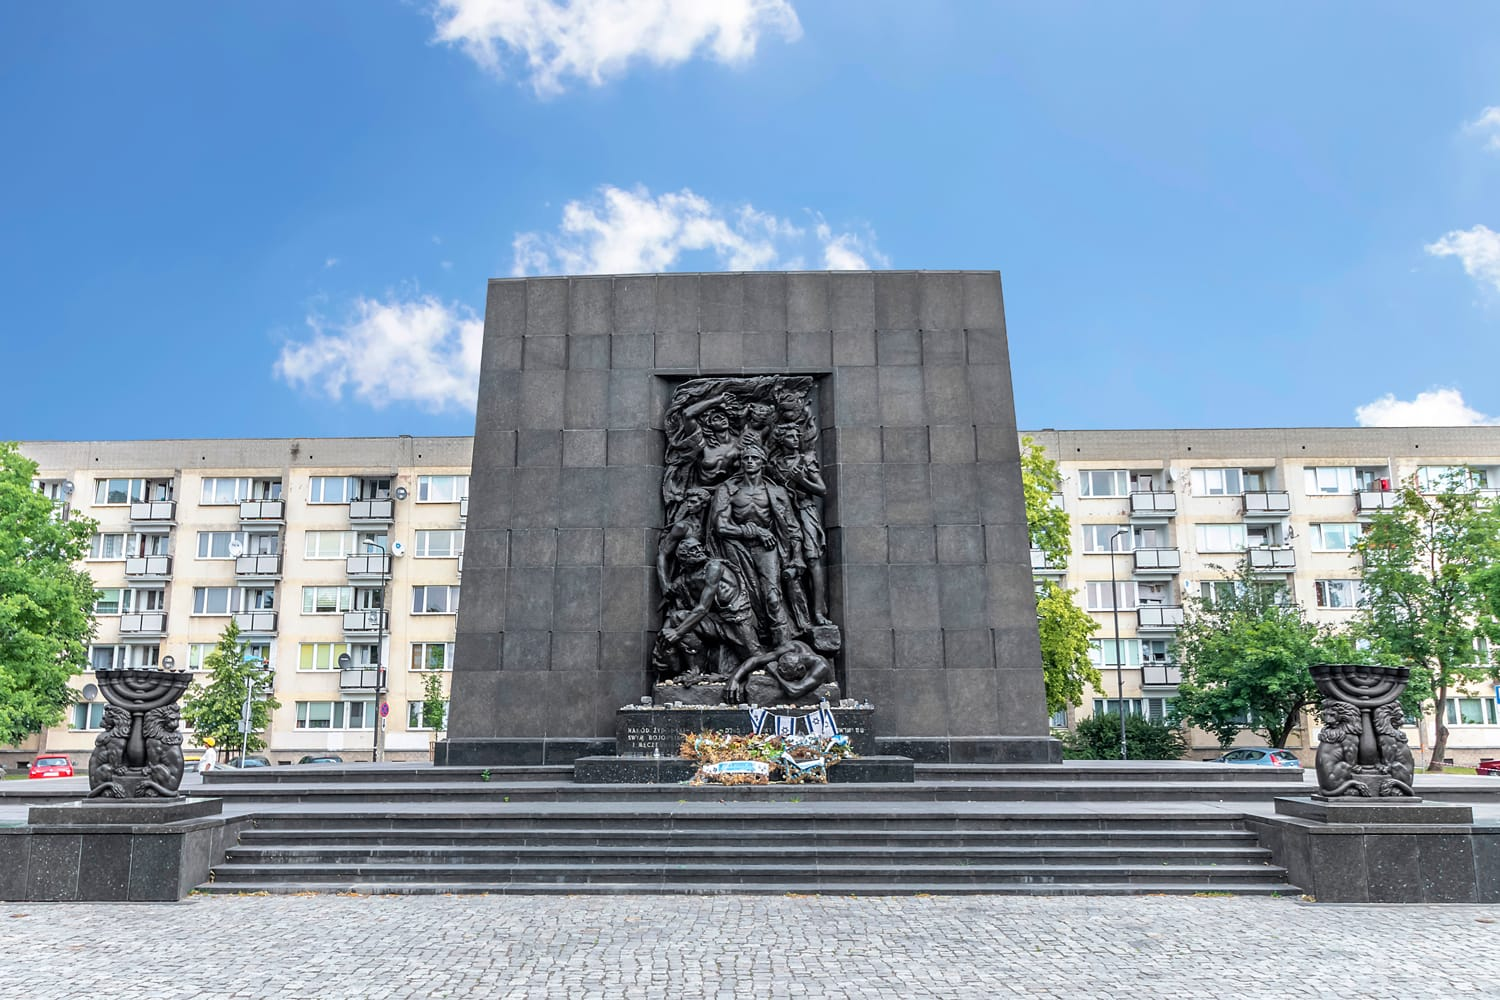 Monument to the Ghetto Heroes in Warsaw city center.